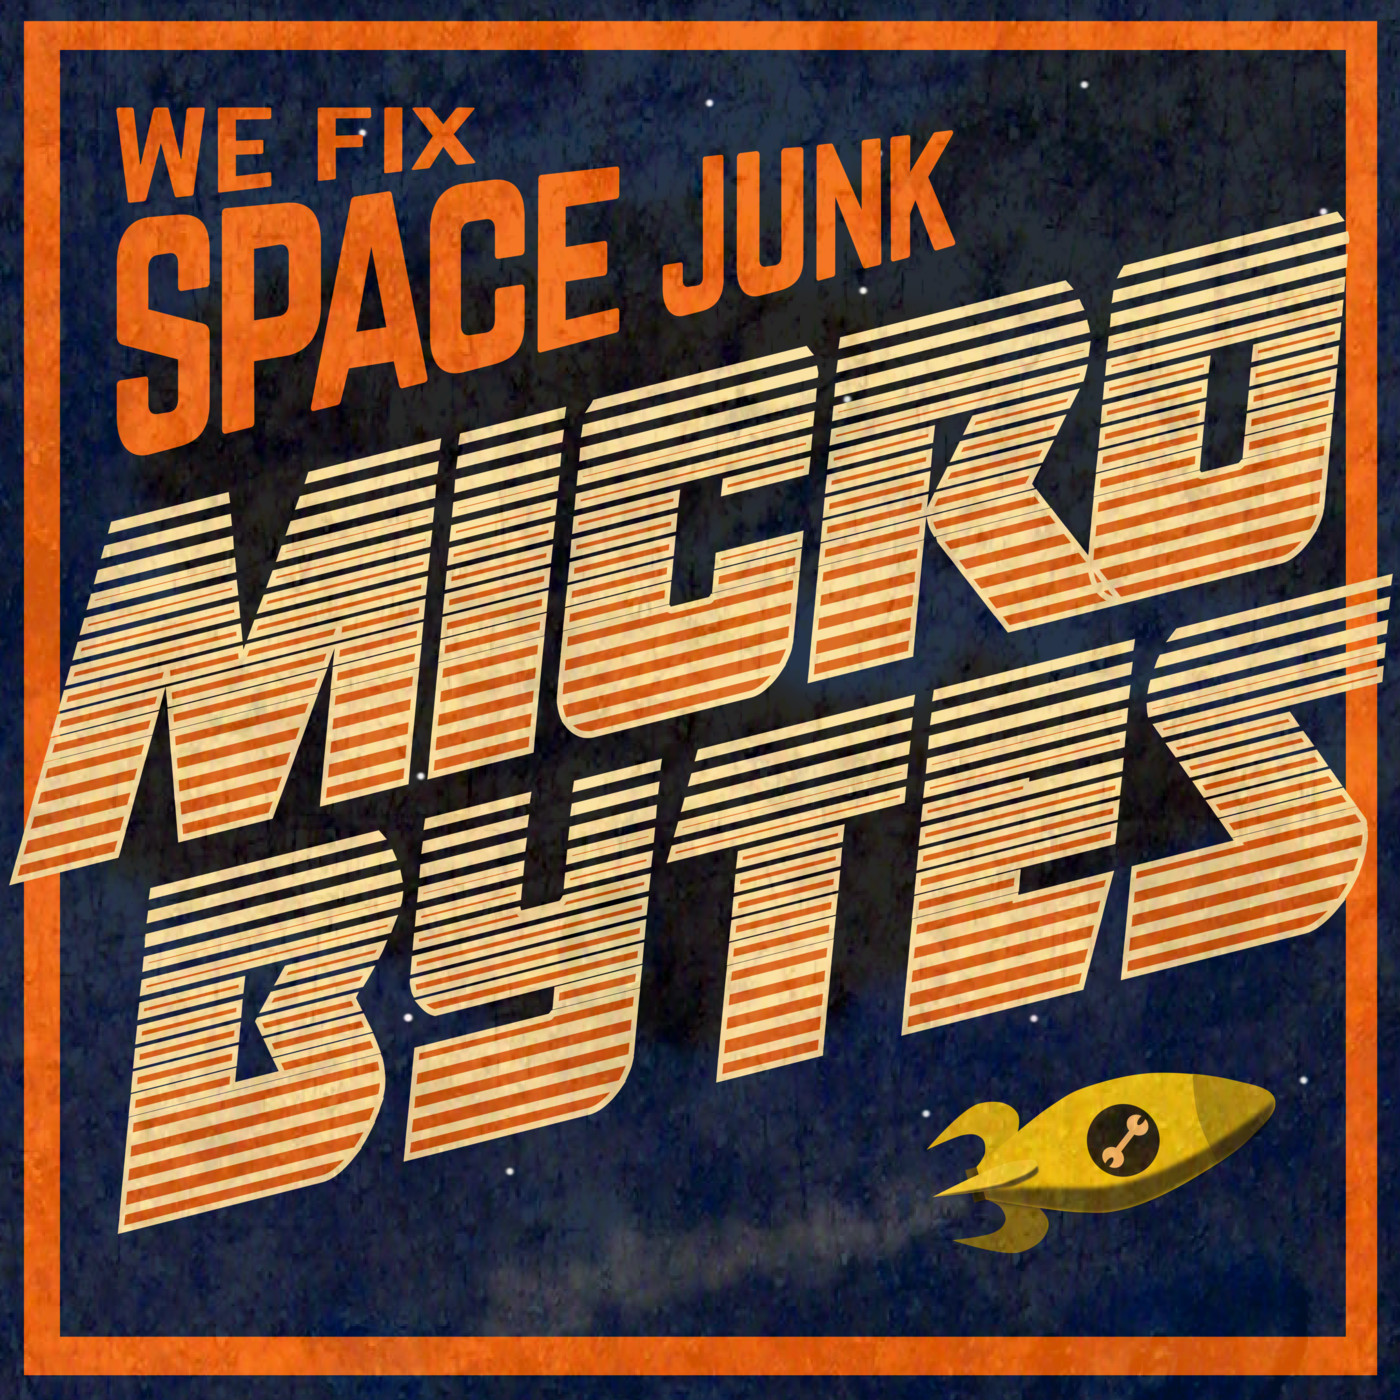 [Trailer] We Fix Space Junk: Micro Bytes